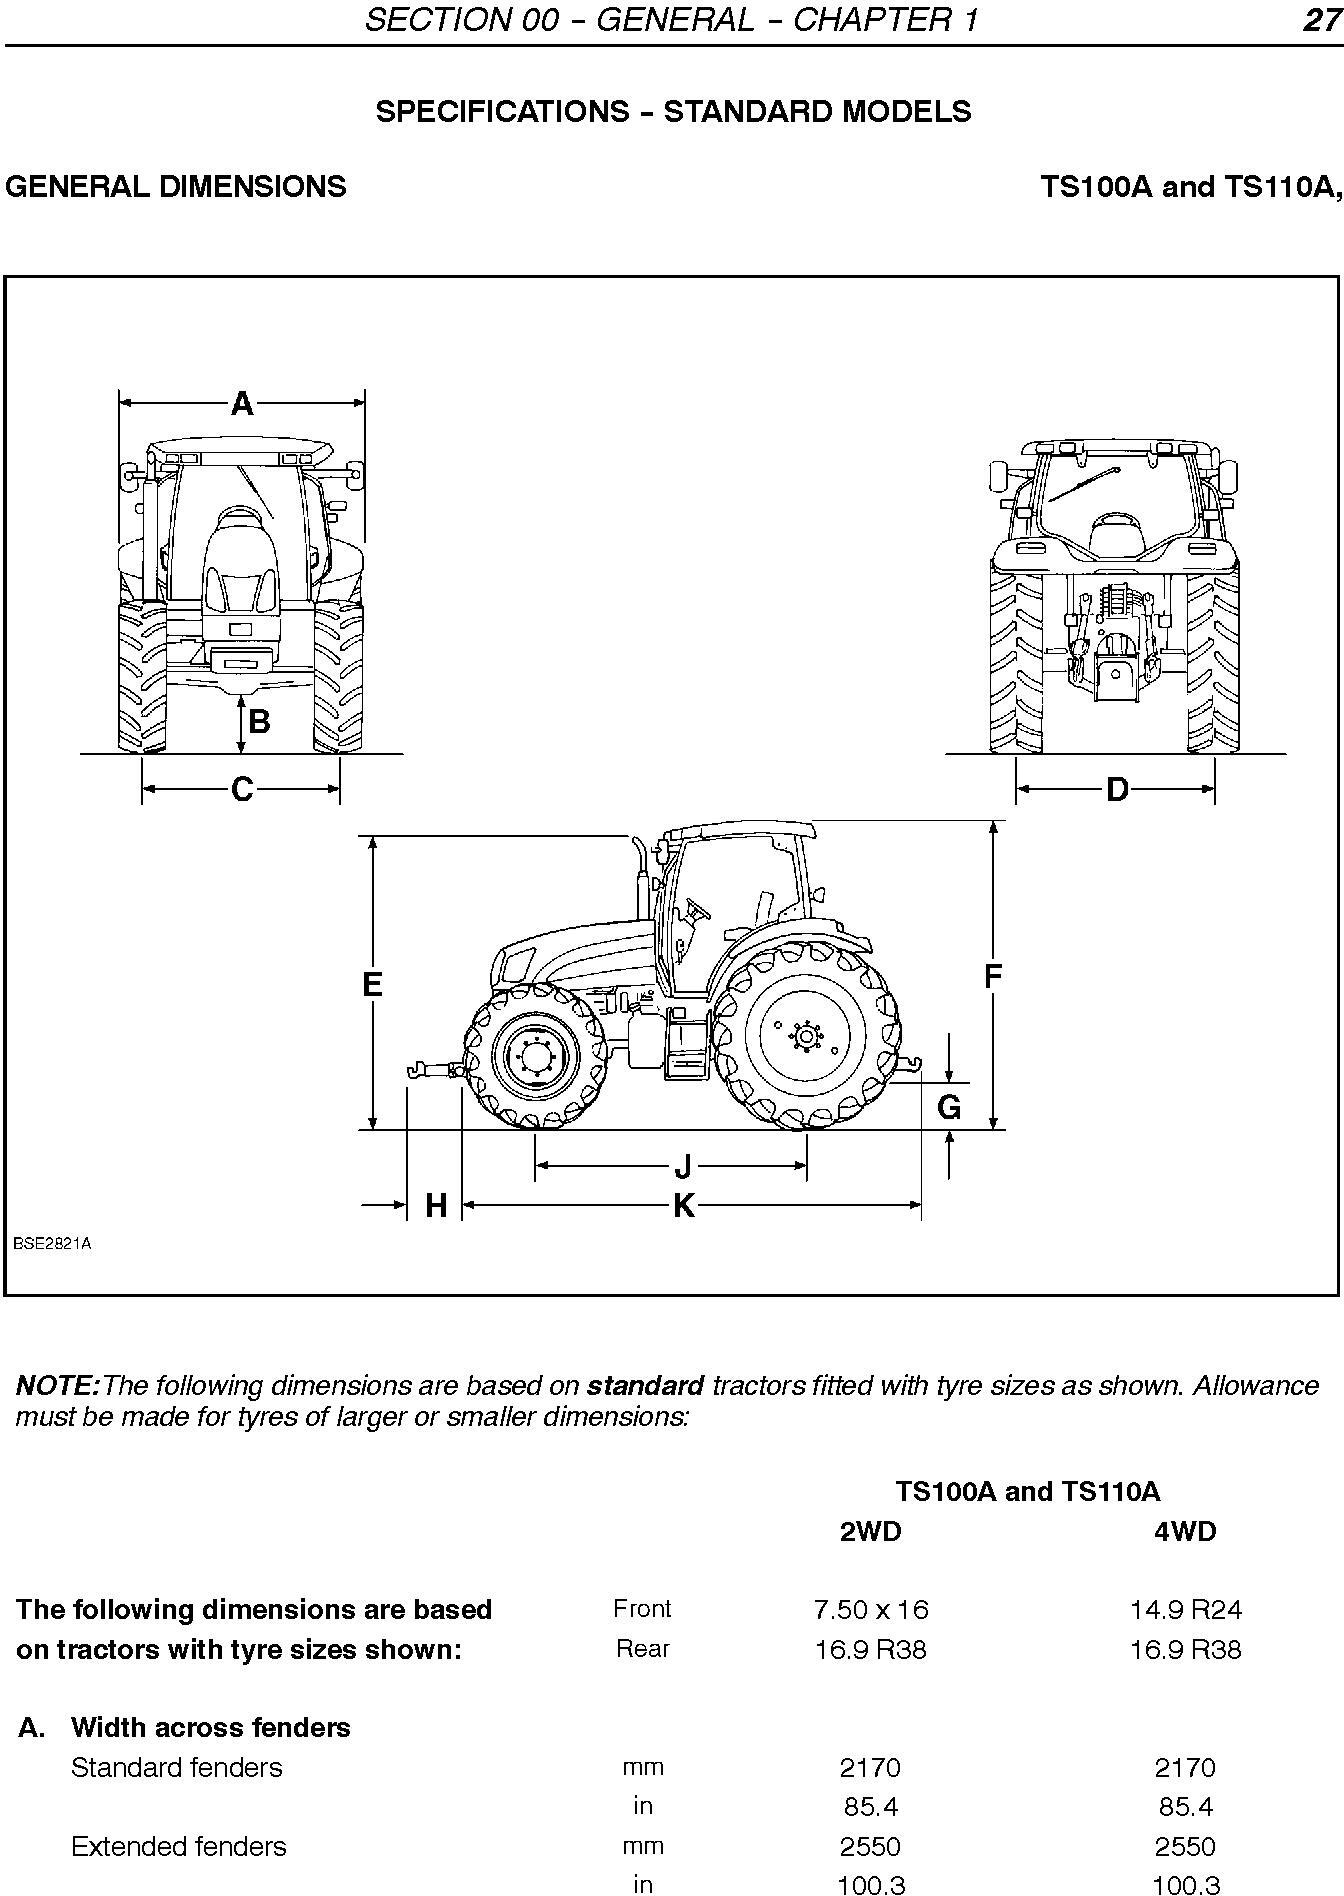 New Holland TS100A, TS110A, TS115A, TS125A, TS130A, TS135A, T6010, T6020, T6030,T6050 Service Manual - 1